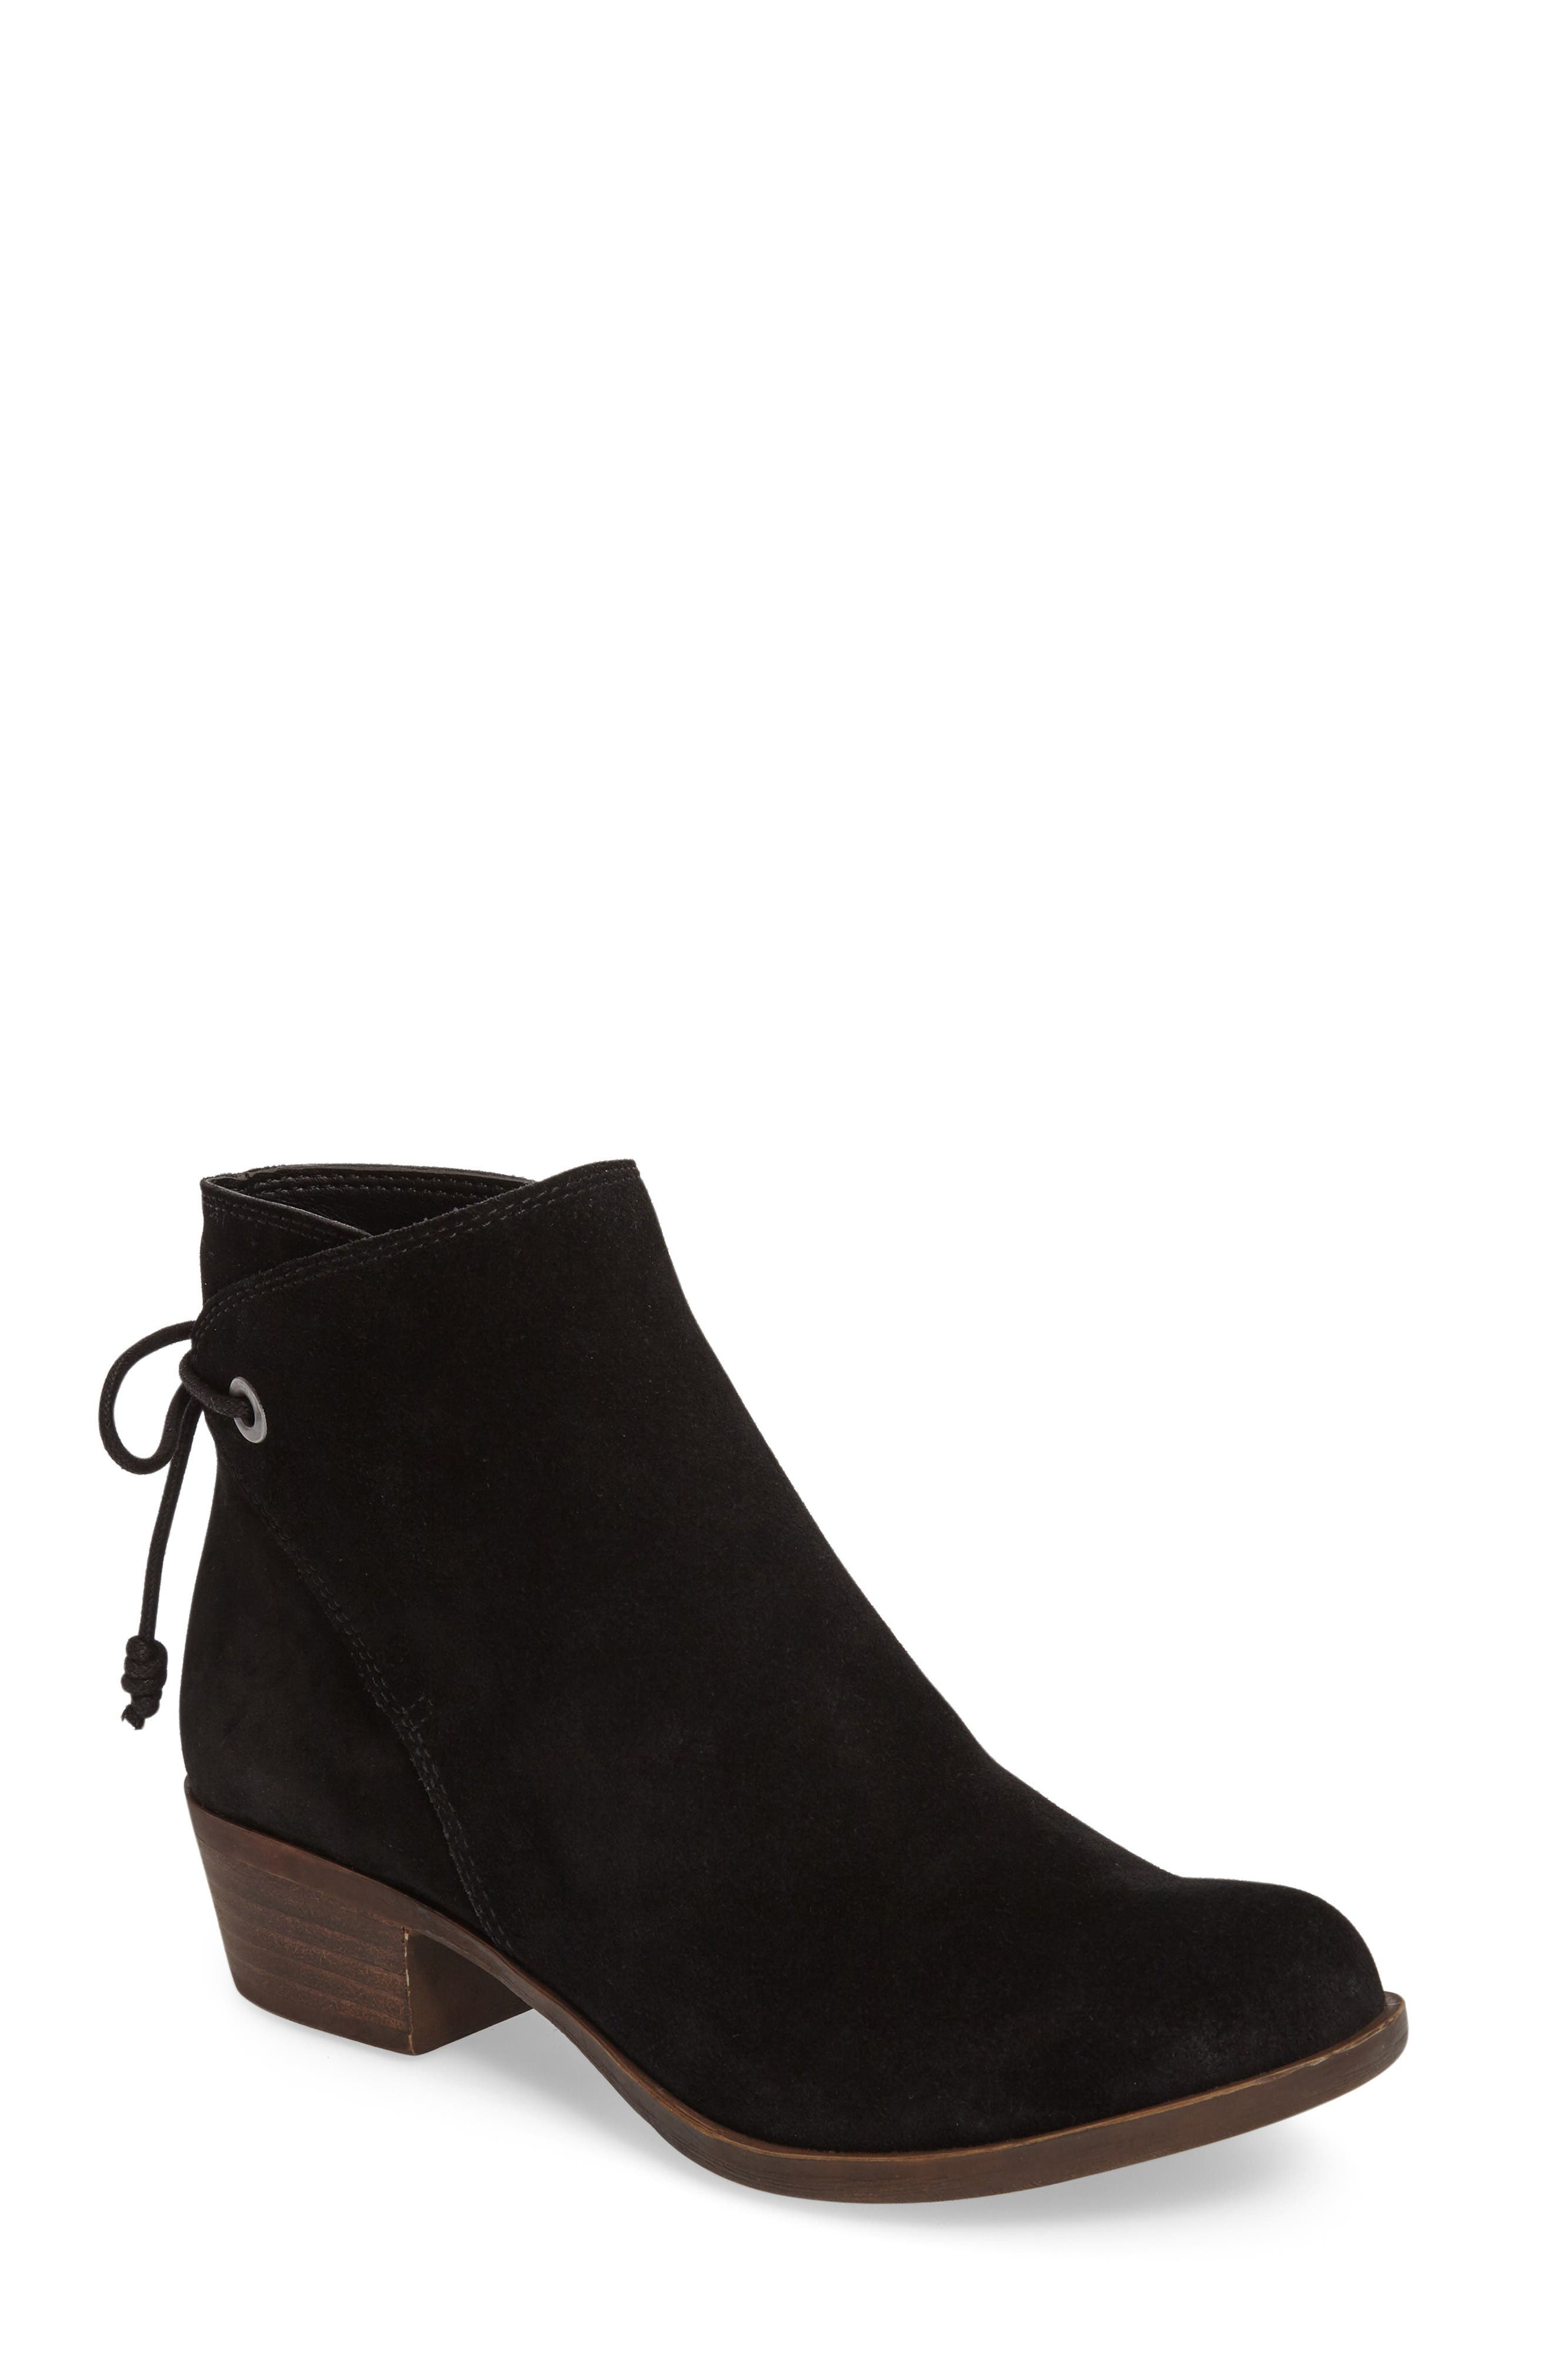 Main Image - Lucky Brand Gwenore Tie Bootie (Women)